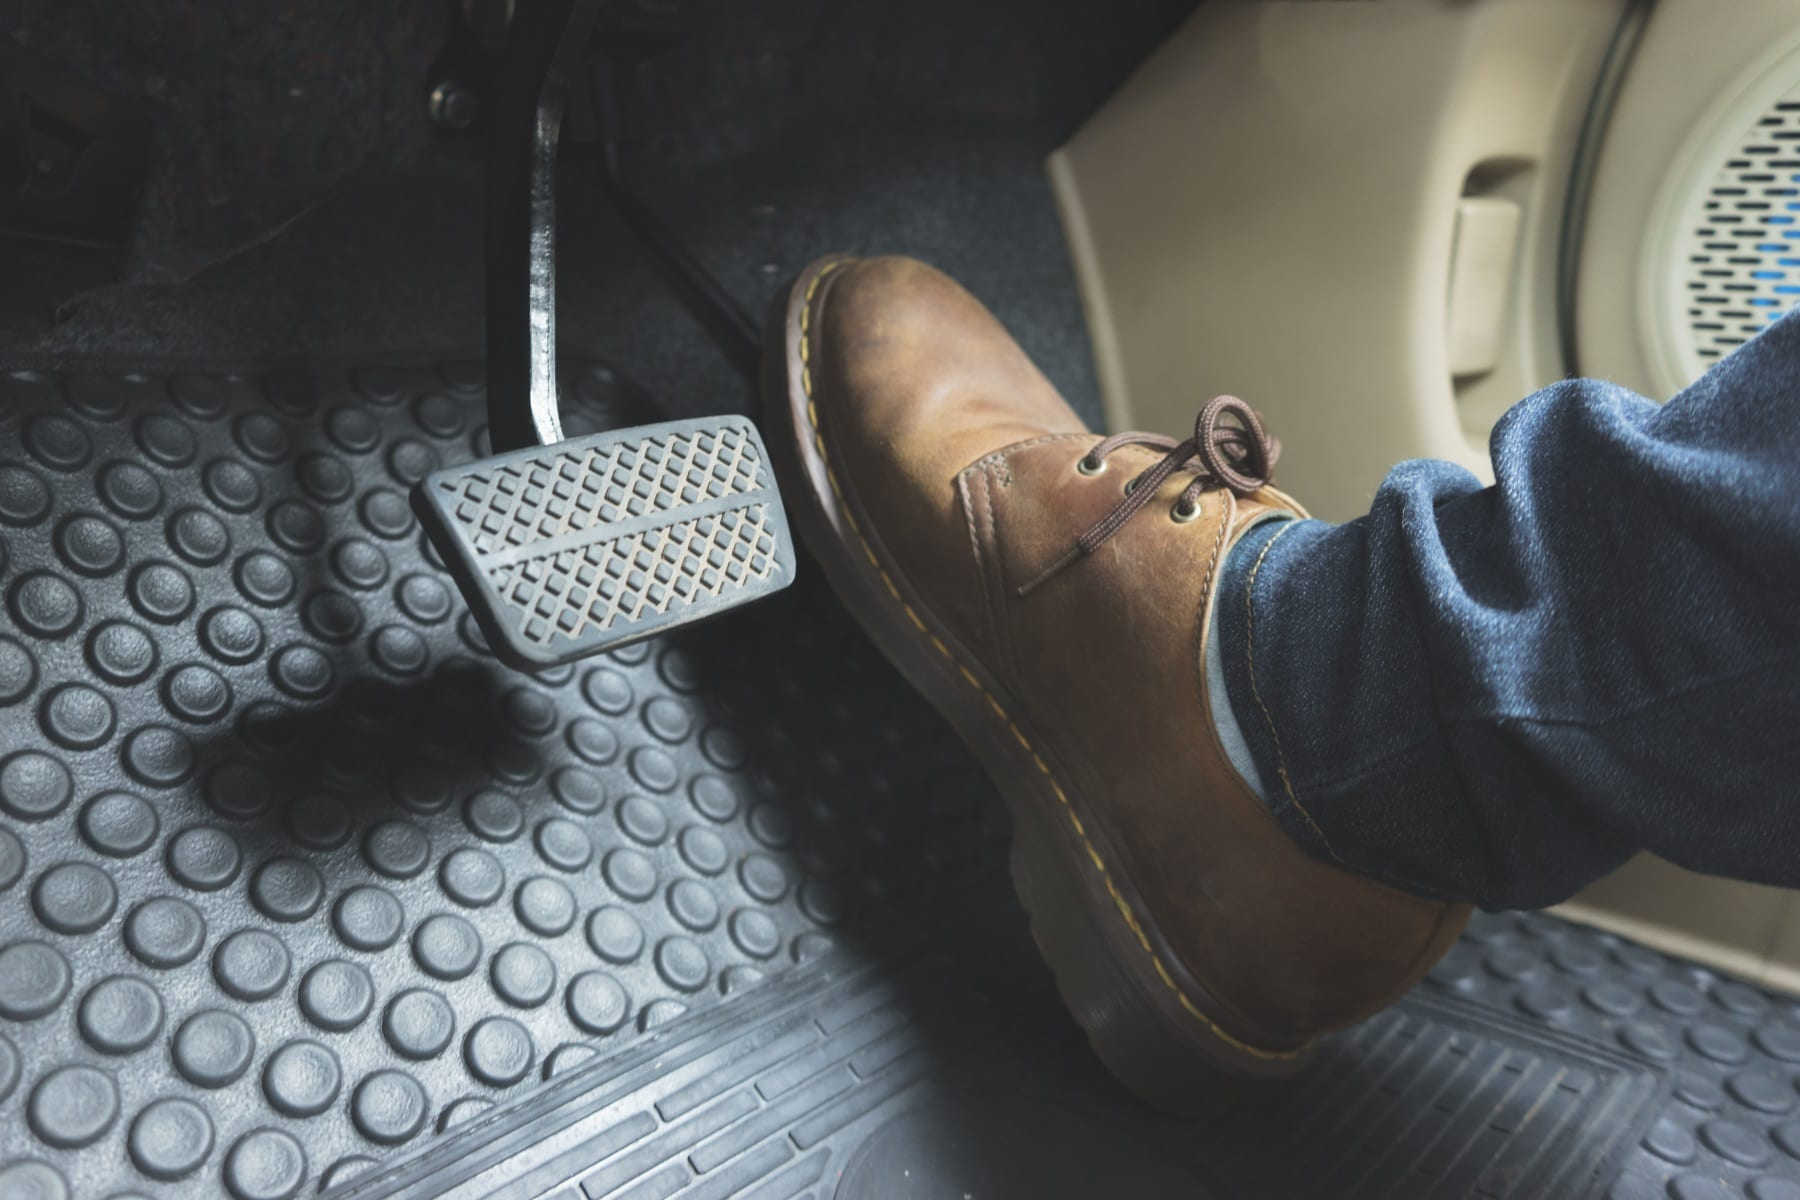 What are the best driving shoes?